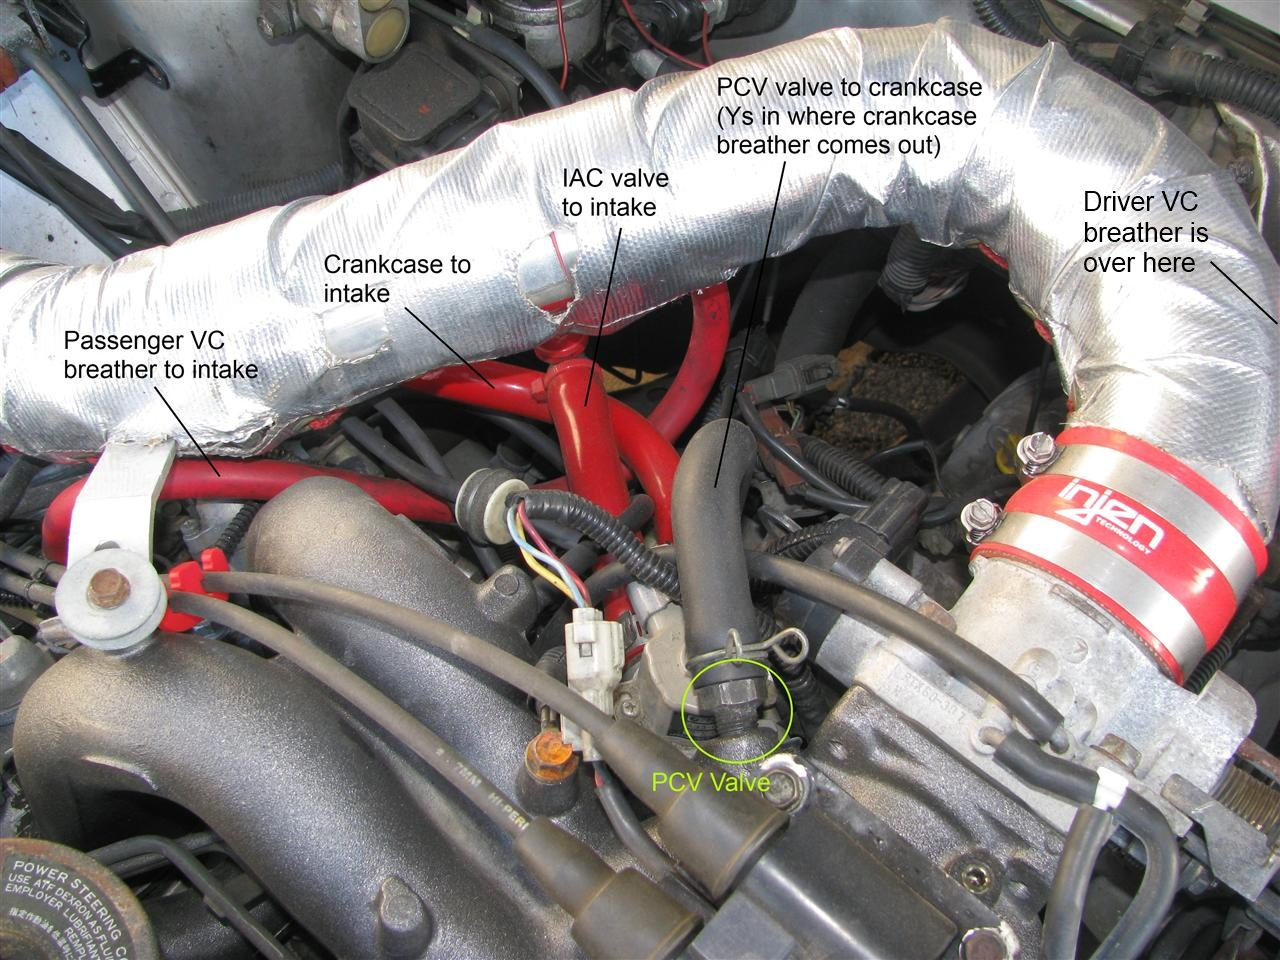 1990 ford f 150 wiring diagram with Subaru Forester Egr Valve Location on Watch also 2014 Silverado Tow Mirror Wiring Diagram besides Subaru Forester Egr Valve Location additionally Watch as well Discussion T36357 ds543698.